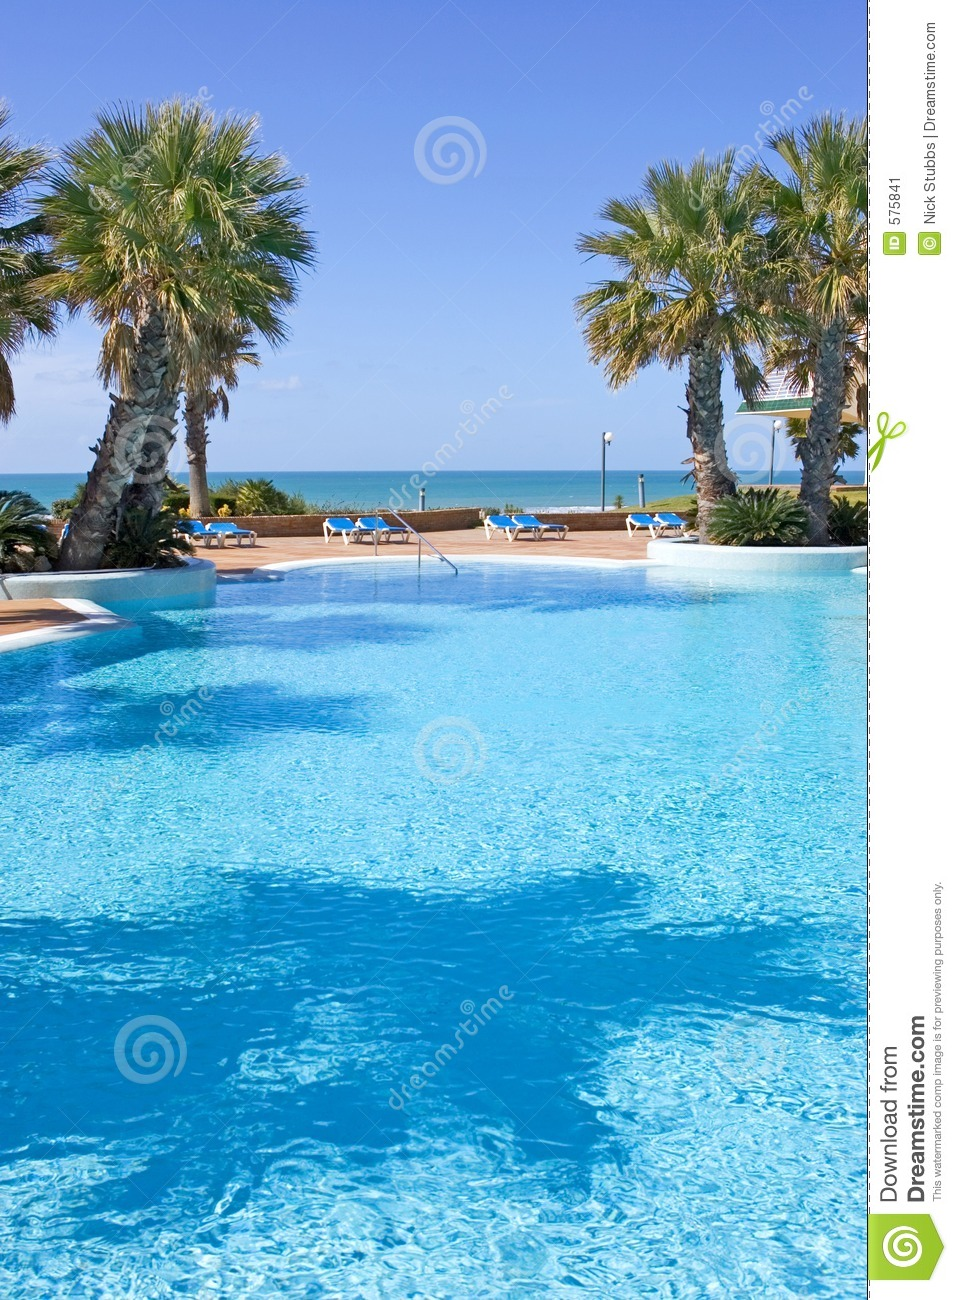 Swimming Pool In Spanish Hotel With Sea Views And Palm Trees Stock Image Image 575841